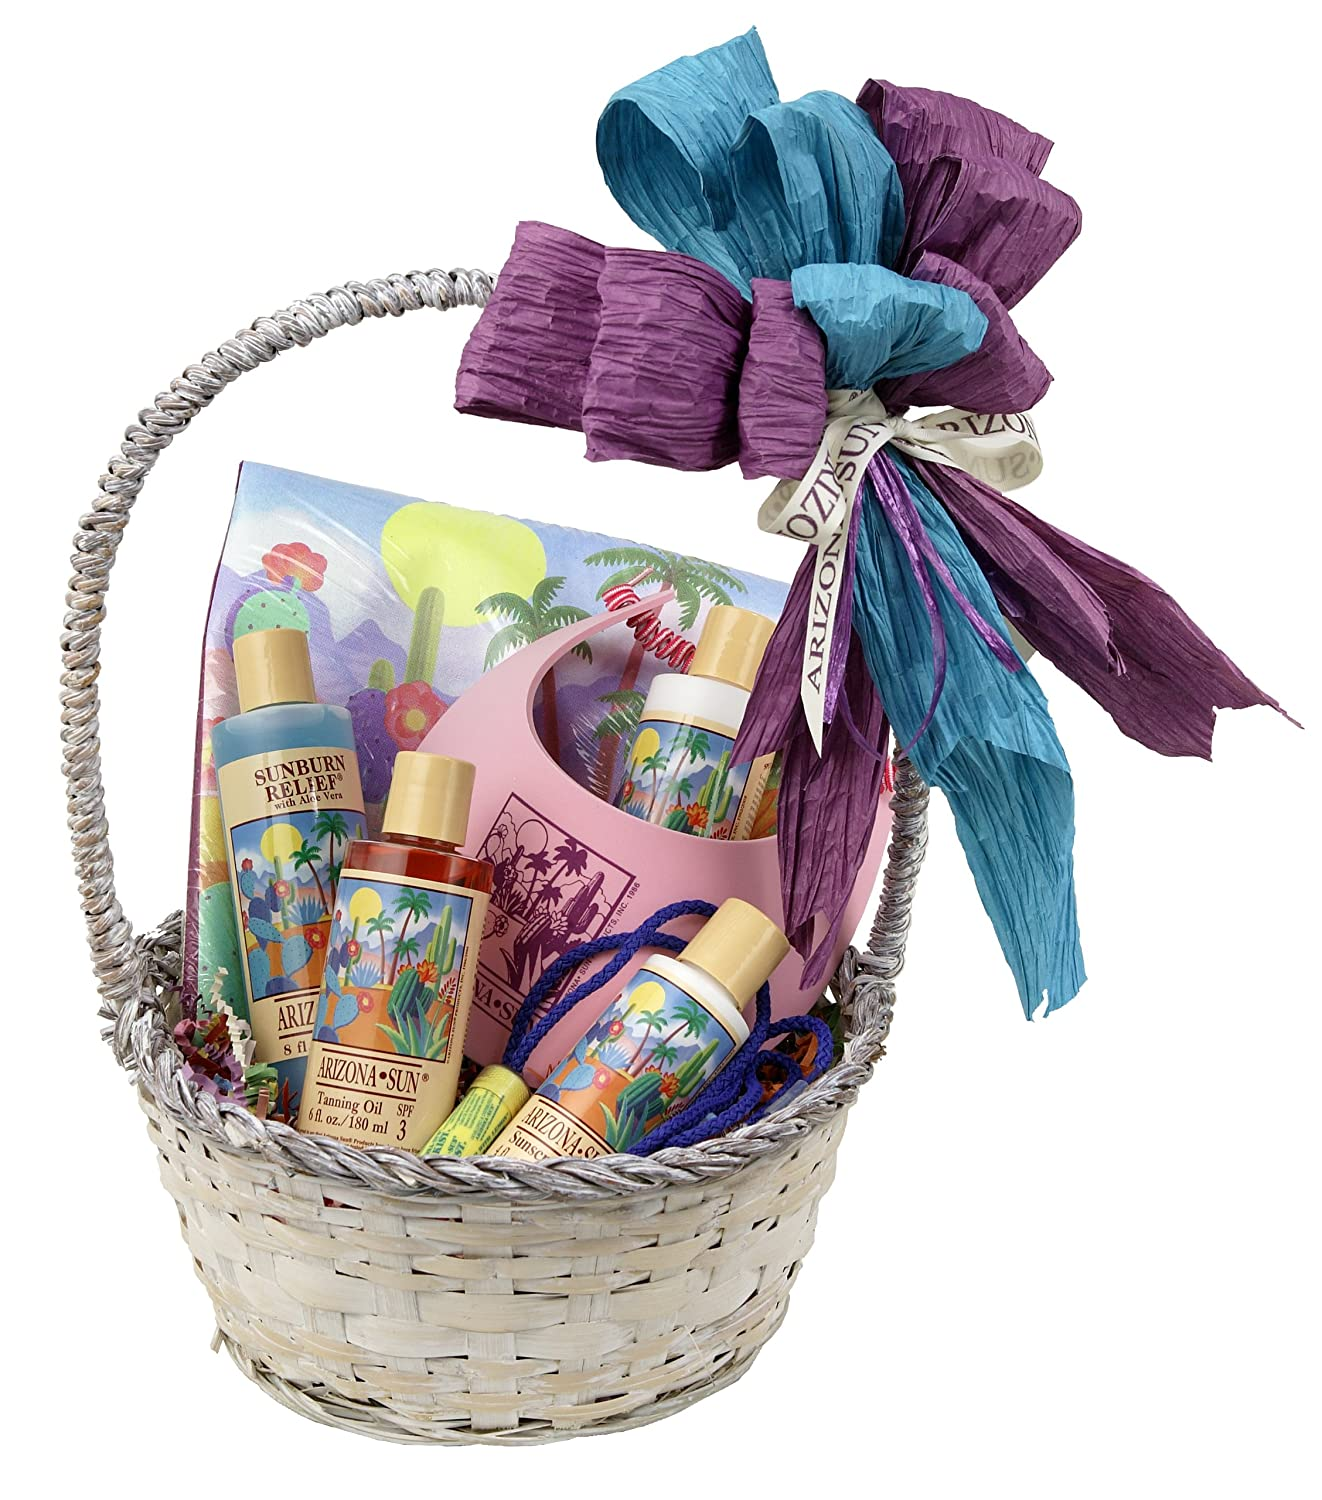 B00061YUQS Arizona Sun Cruise and Resort Gift Basket – Say Bon Voyage – Have a Great Trip Gifts – Everything Needed for Vacation – Soothing Skin Care – Sun Care Protection – Any Occasion - Birthday 915O5FXOV0L._SL1500_.